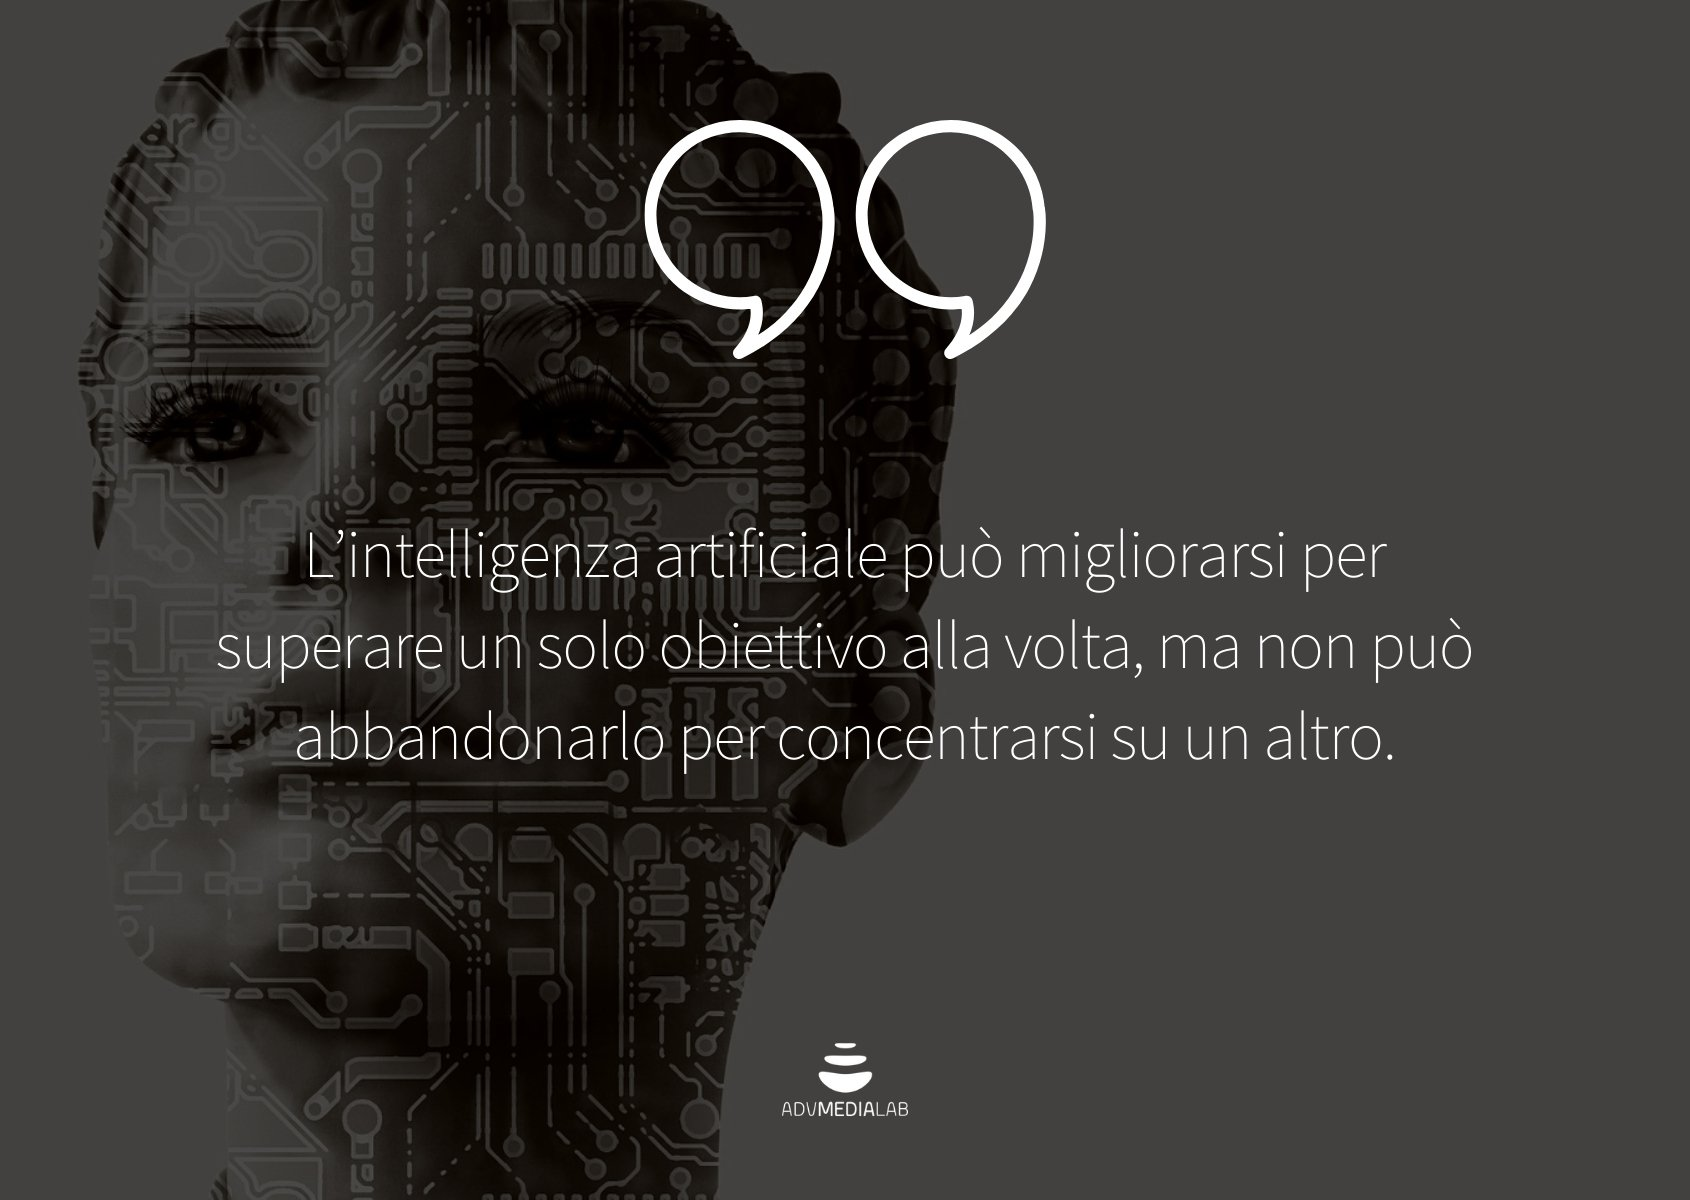 Marketing-ai-quote2